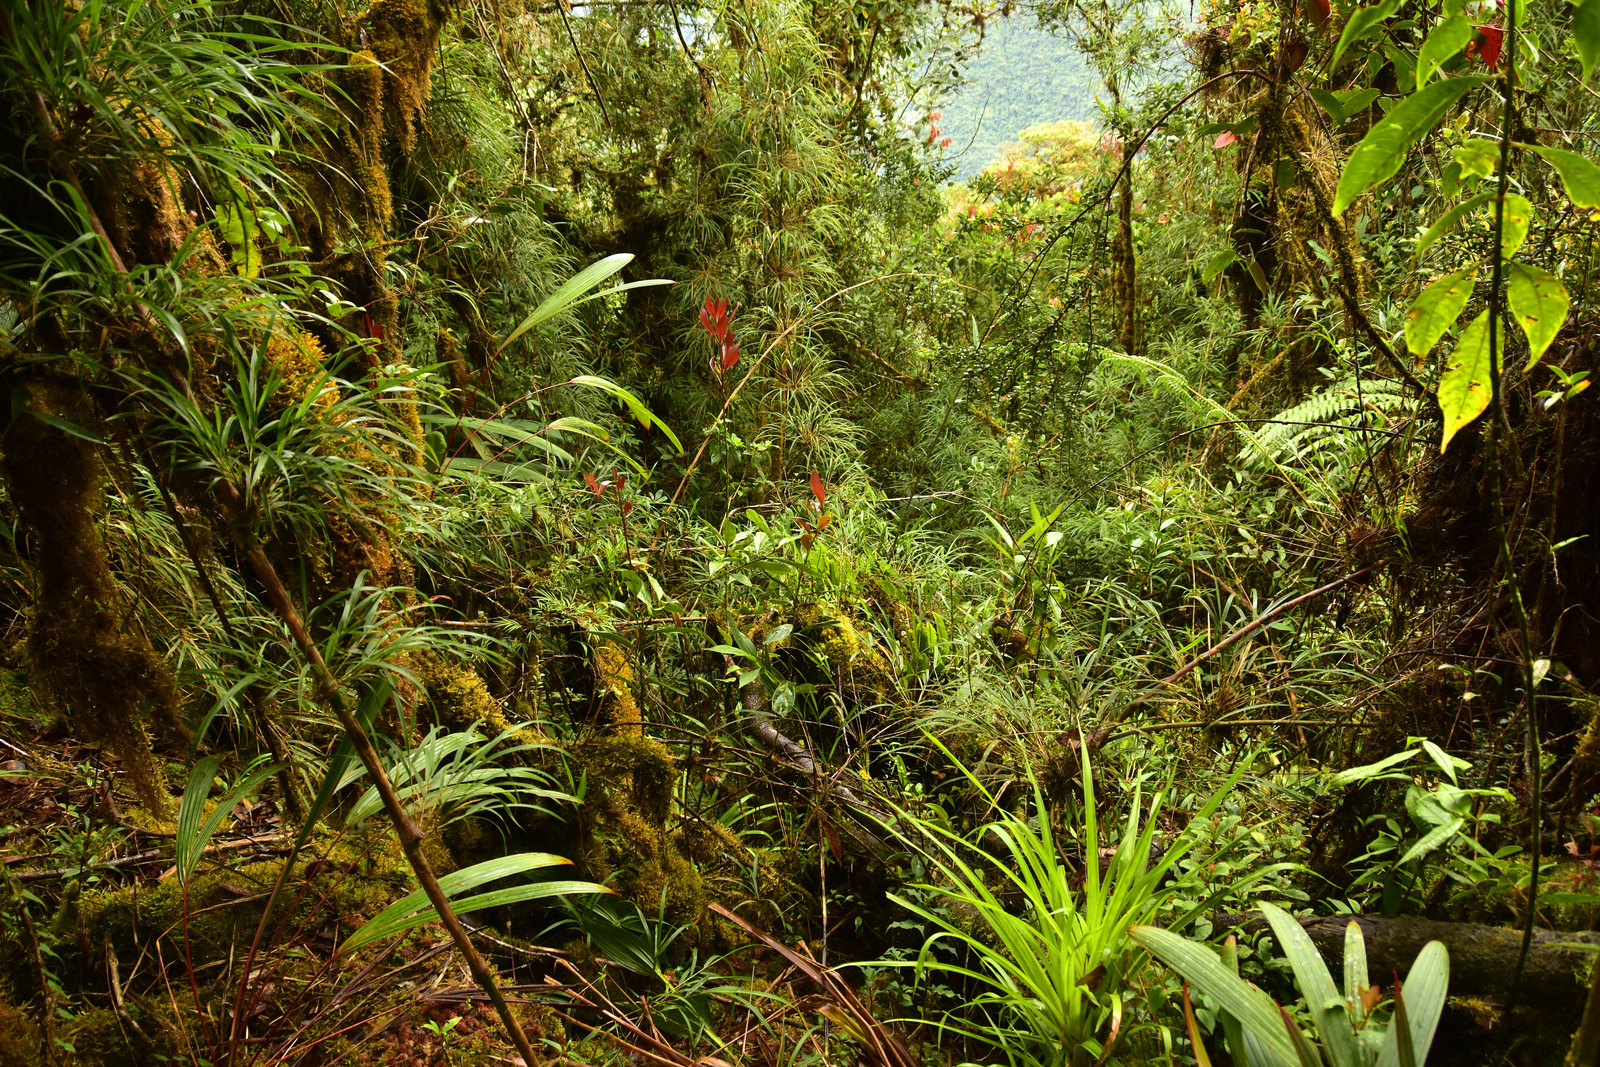 he Zongo Valley RAP expedition took place primarily in cloud and elfin forest, where moss, orchids, ferns and bromeliads drape themselves on bamboo and trees adapted to the montane climate. Image © Trond Larsen